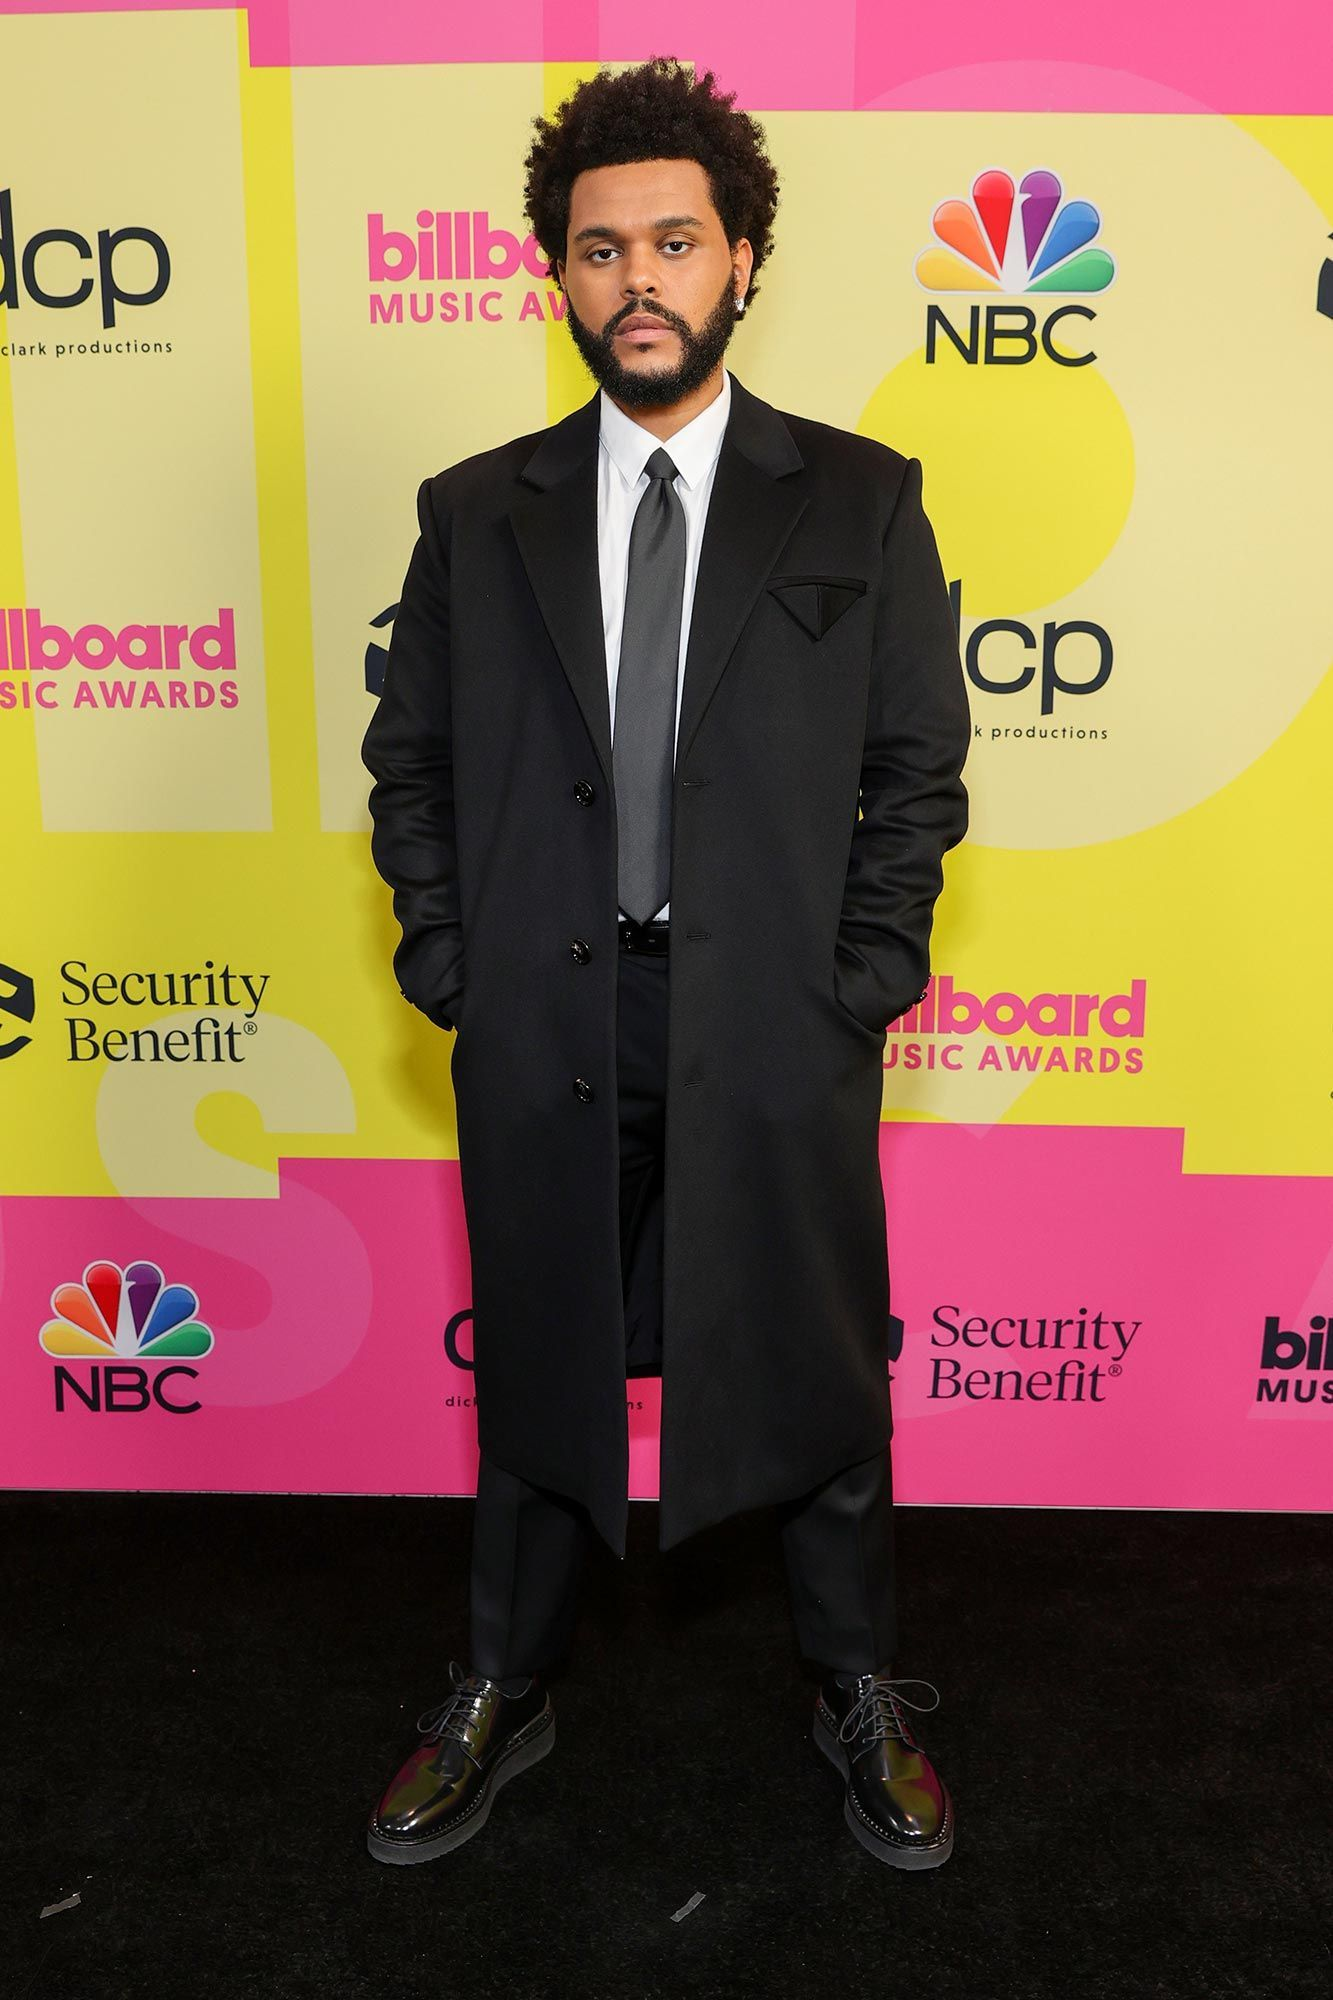 The Weeknd at the 2021 Billboard Music Awards wearing a black suit